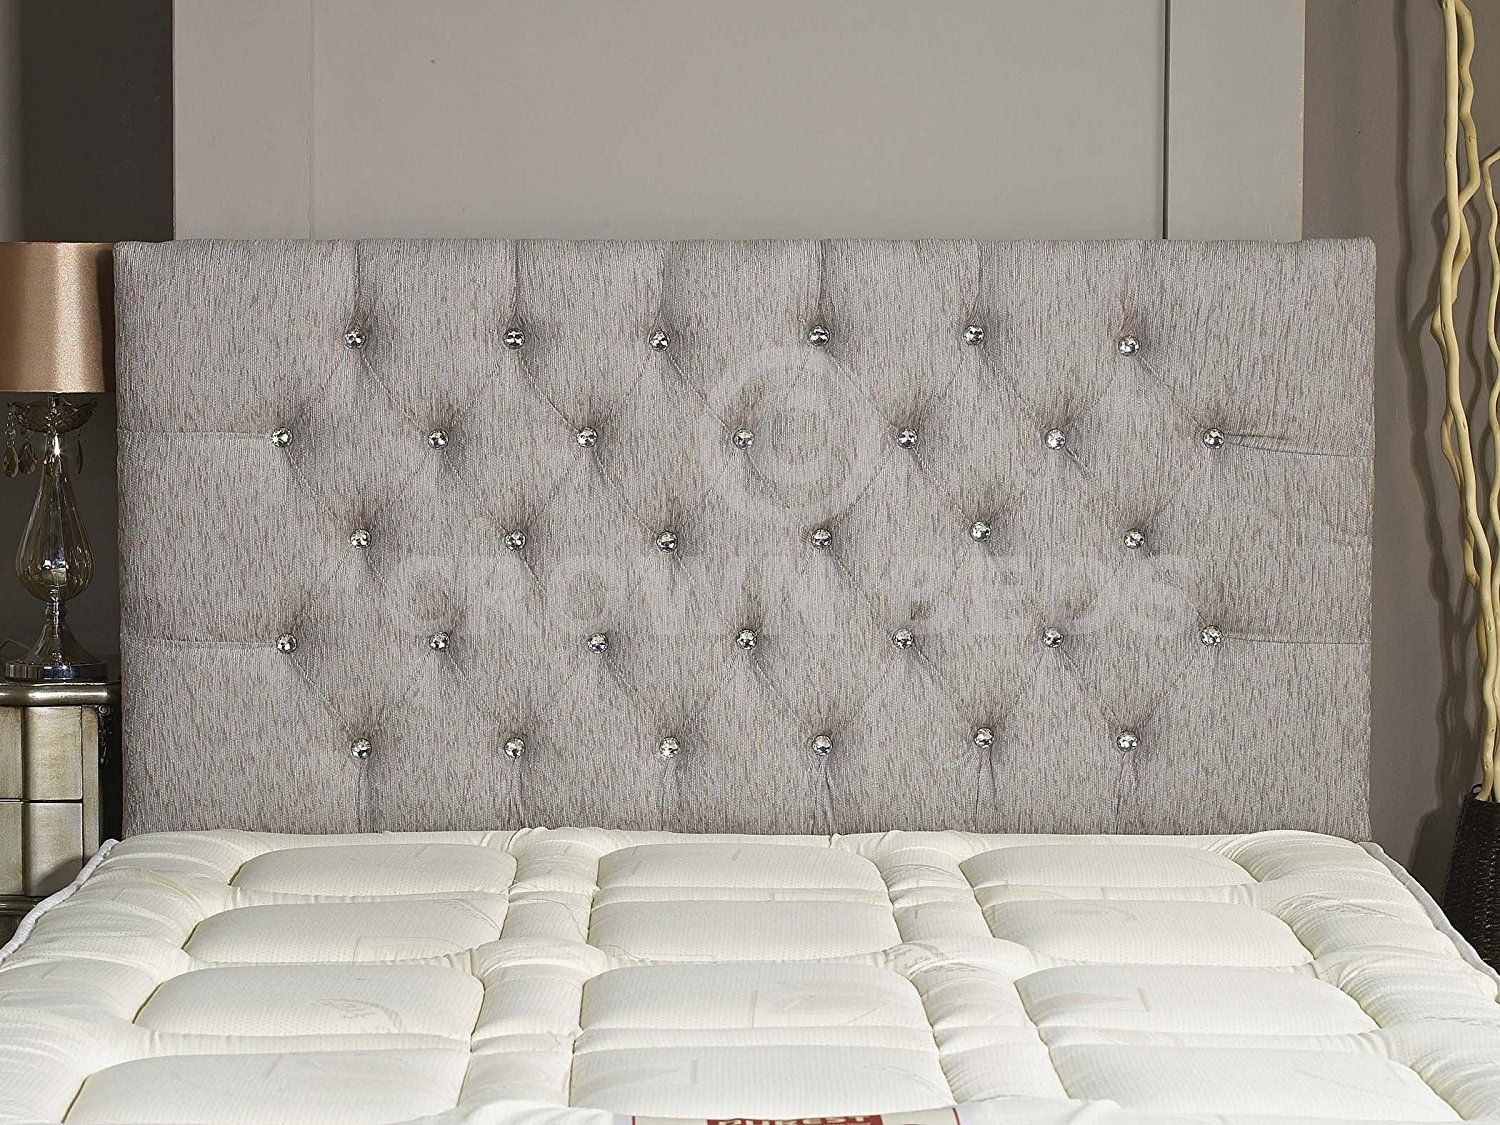 CHESTERFIELD DIAMANTE BUTTON HEADBOARD IN 2ft63ft4ft